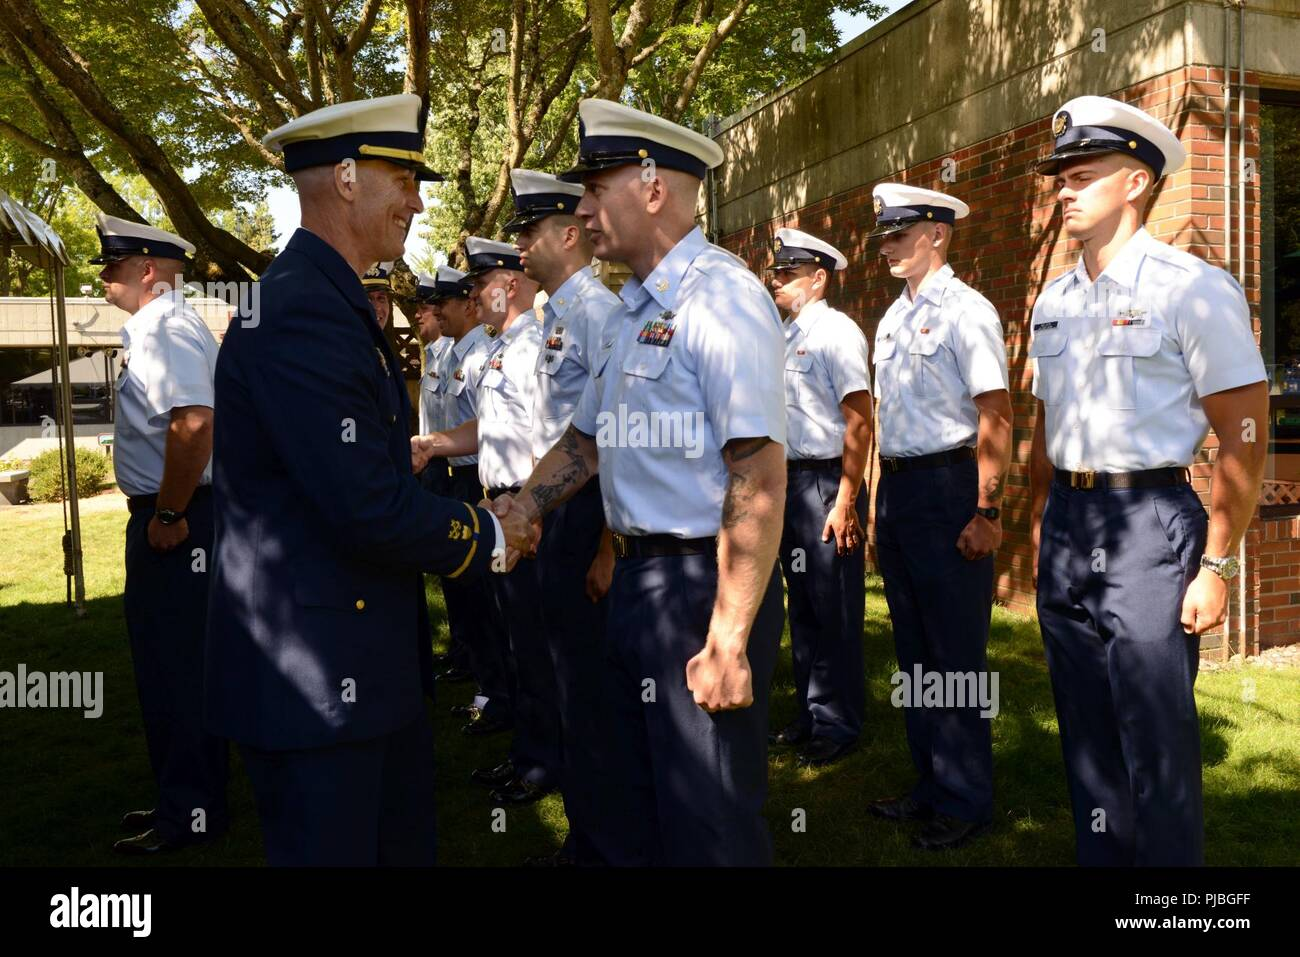 Command Chief Warrant Officer Stock Photos & Command Chief Warrant